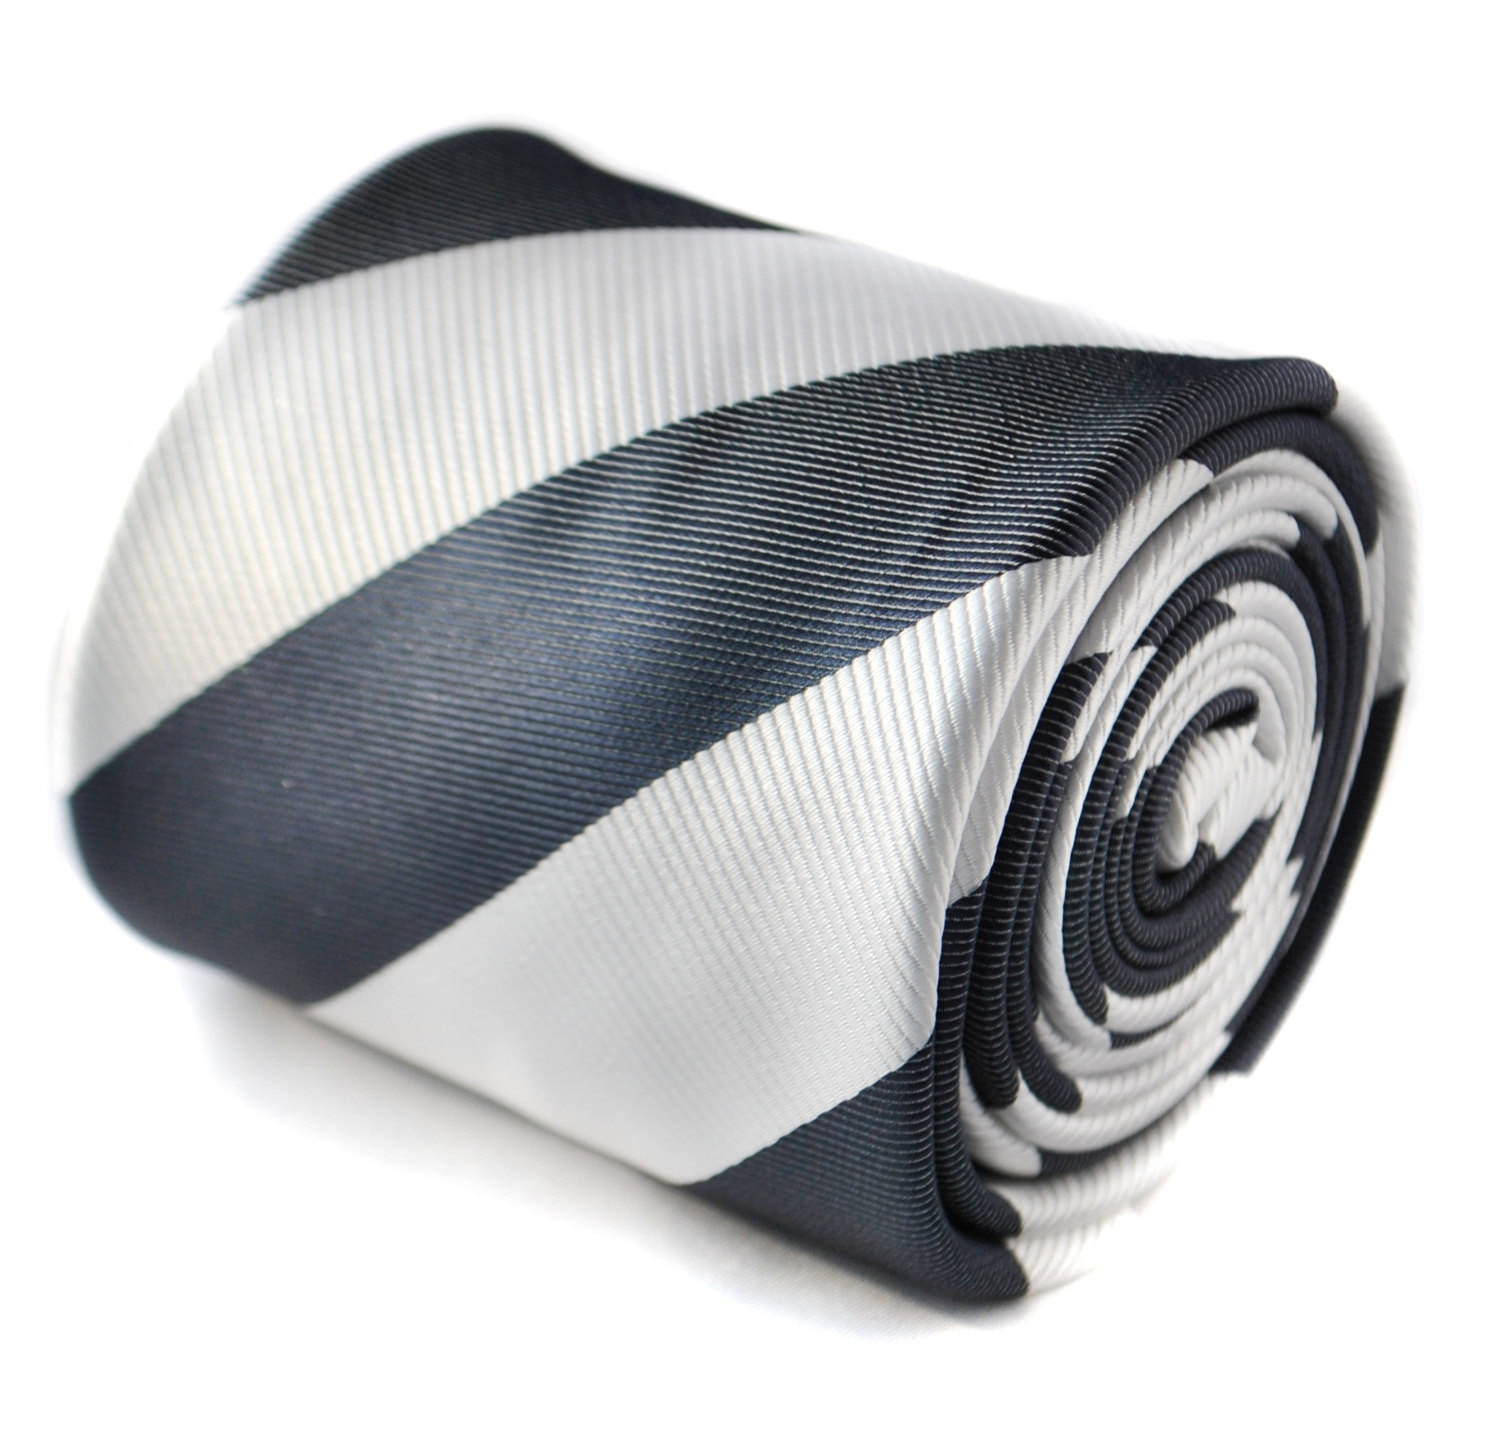 charcoal grey and white barber striped tie with floral design to the rear by Fre